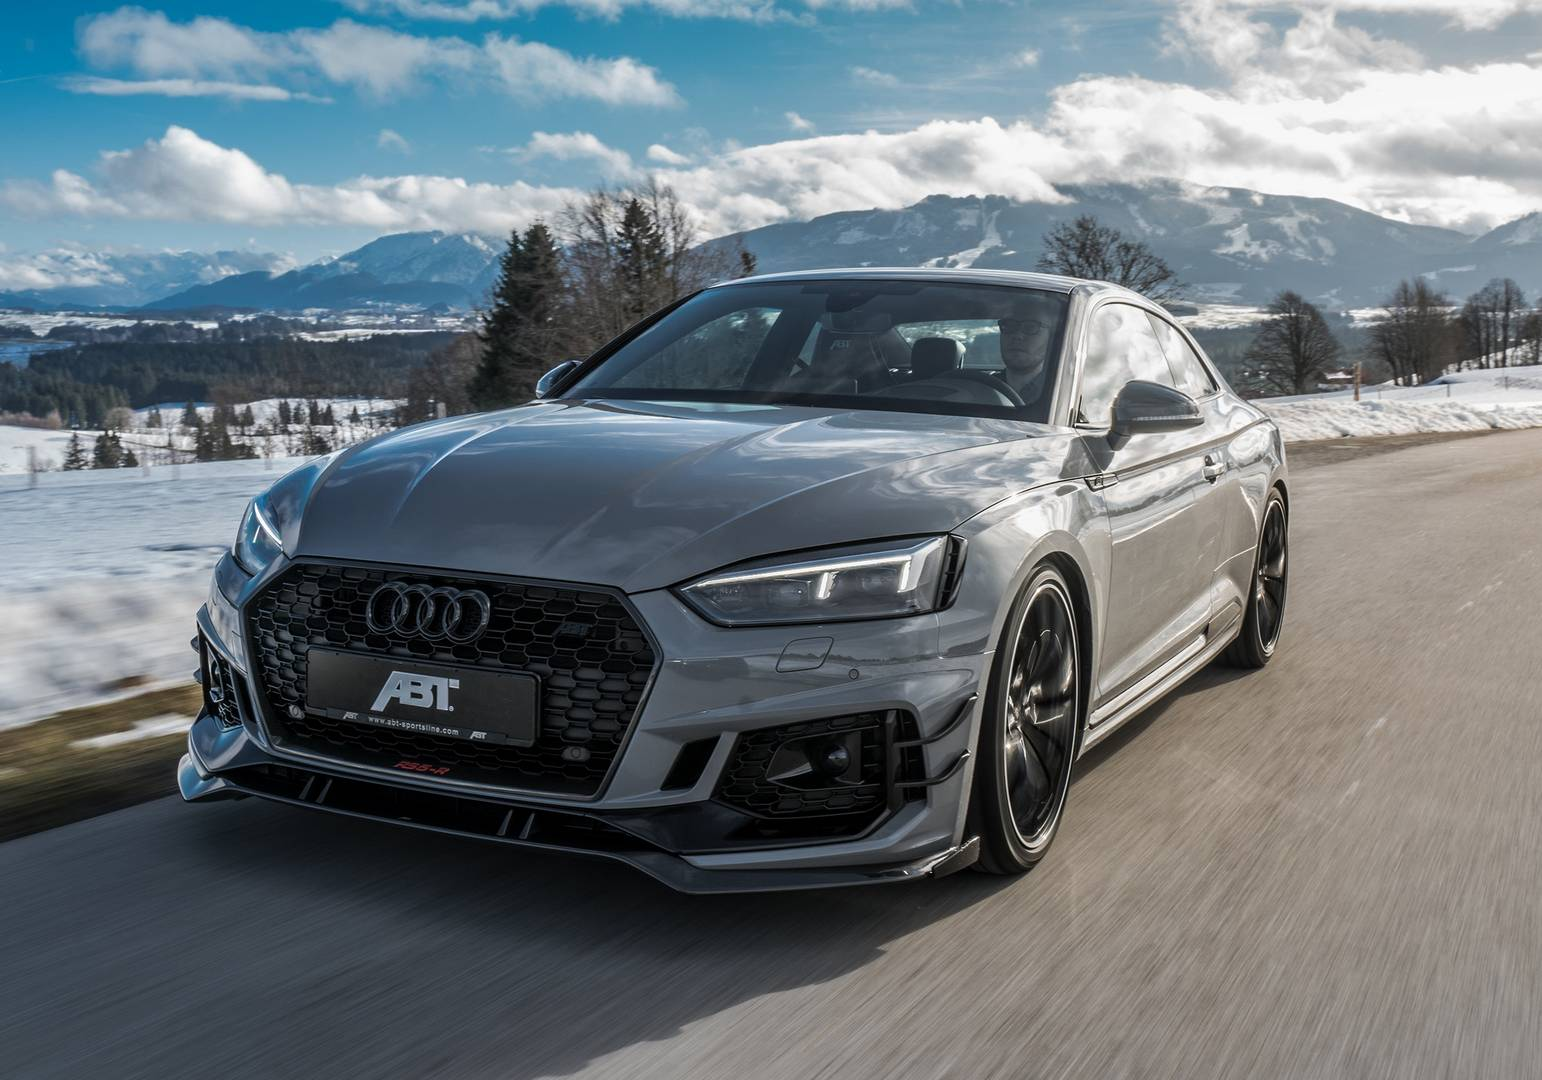 Official: ABT Audi RS5-R with 530hp - Limited to 50 Units - GTspirit